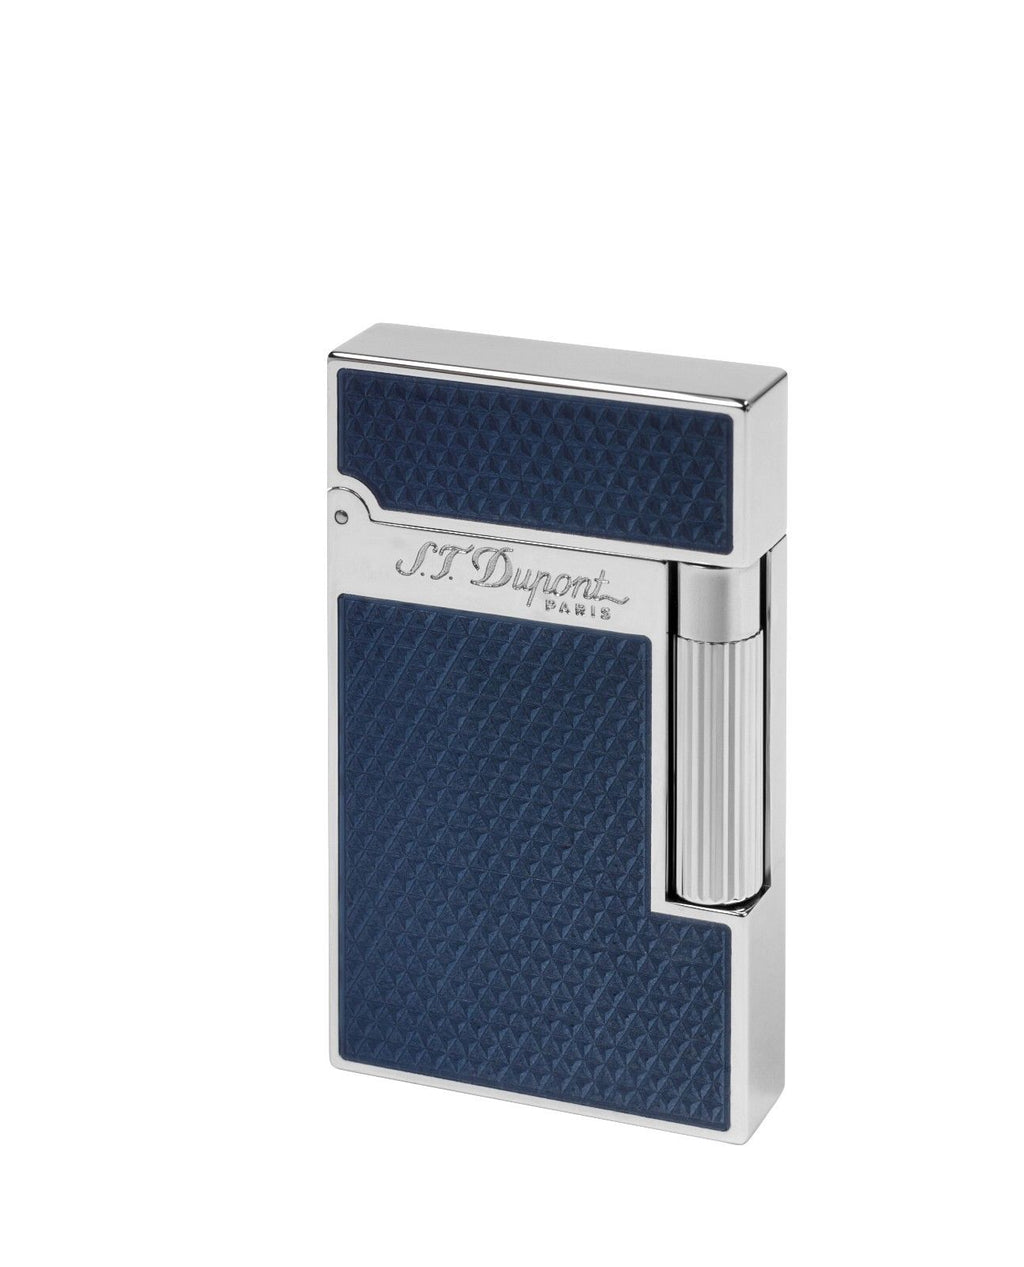 ST Dupont Ligne 2 Fire Head Over Blue Lacquer Palladium Finish Lighter ST016252